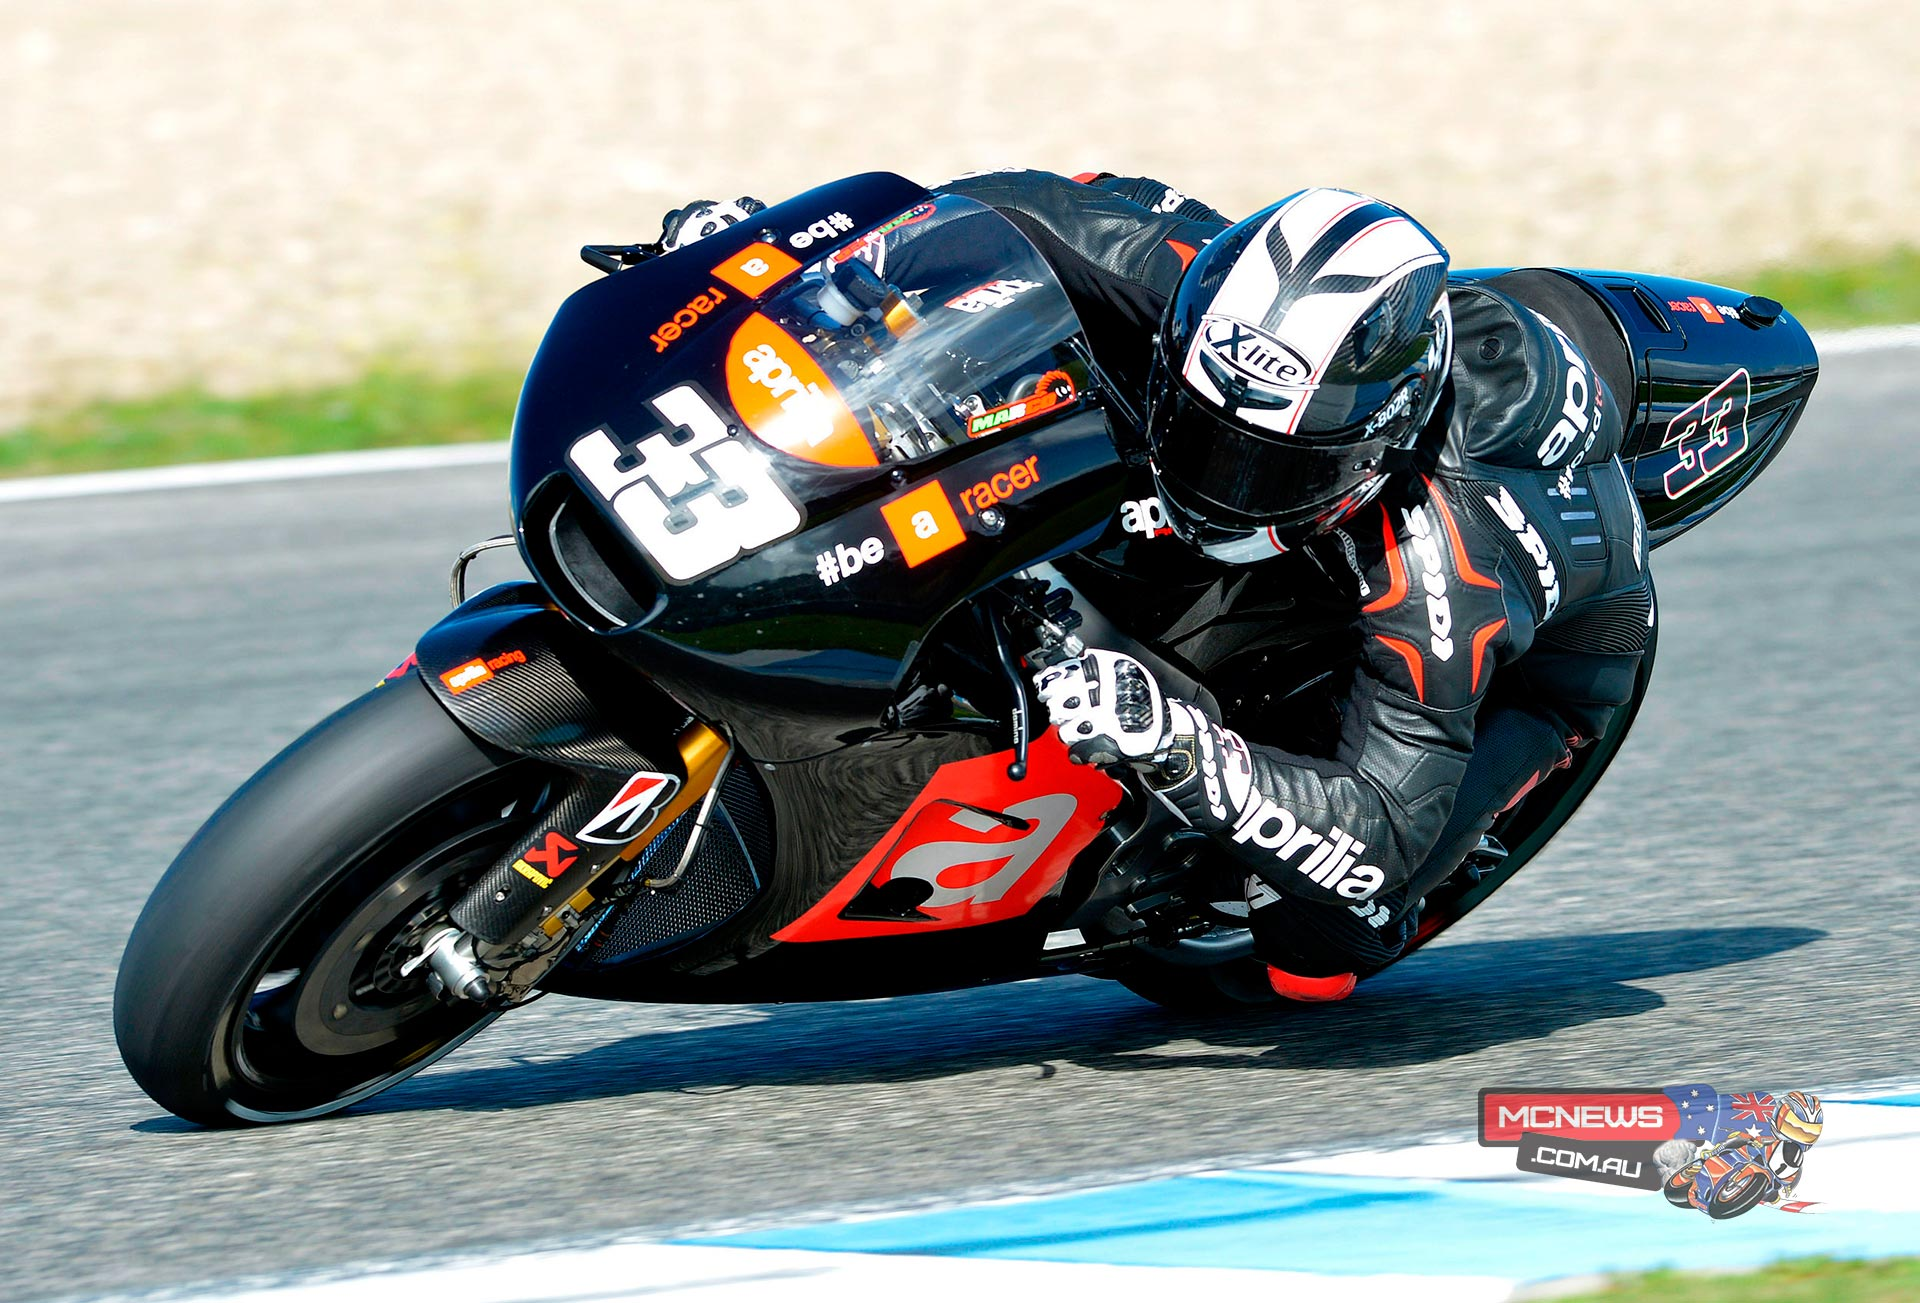 """Marco Melandri: """"These were three interesting and very demanding days at the same time. Lap after lap I am figuring out more and more where I need to improve and what I need in order to feel at ease. I still feel quite self-conscious. I think we'll need to put in a few kilometres to find the right feeling. The new engine had a few growing pains, which is normal in this phase, but we have already seen what its positive sides are and where we will need to concentrate on improving it. We have a long period of down time ahead of use which we'll use for development so that we're ready for the Sepang tests. All the guys are working hard and the whole team is very enthusiastic. This is an atmosphere that gives me high hopes."""""""